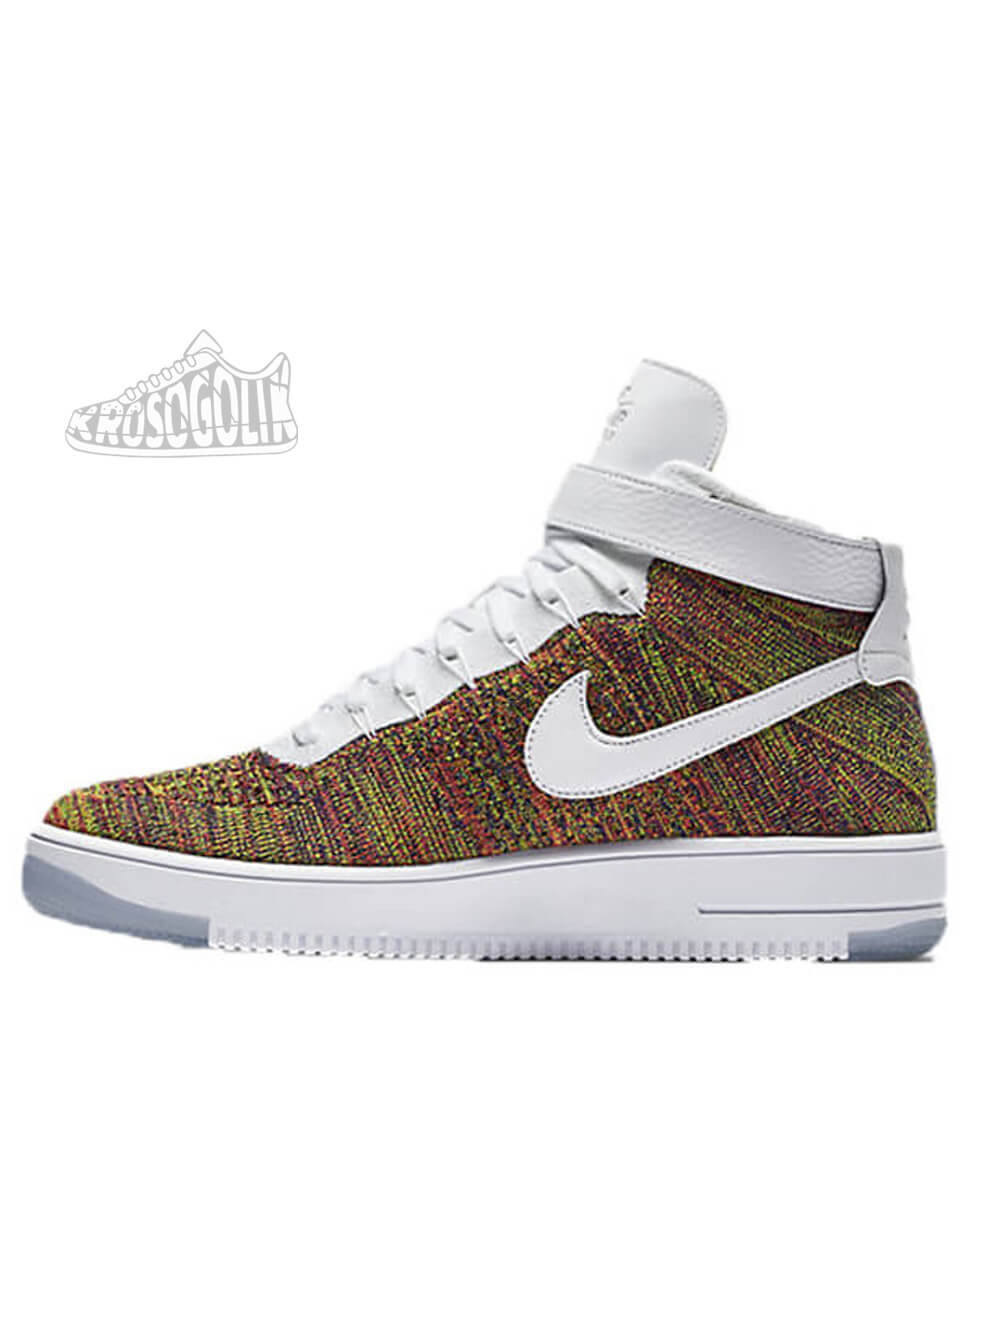 Force Nike Mid Air Flyknit 1 Ultra WI2HEYeD9